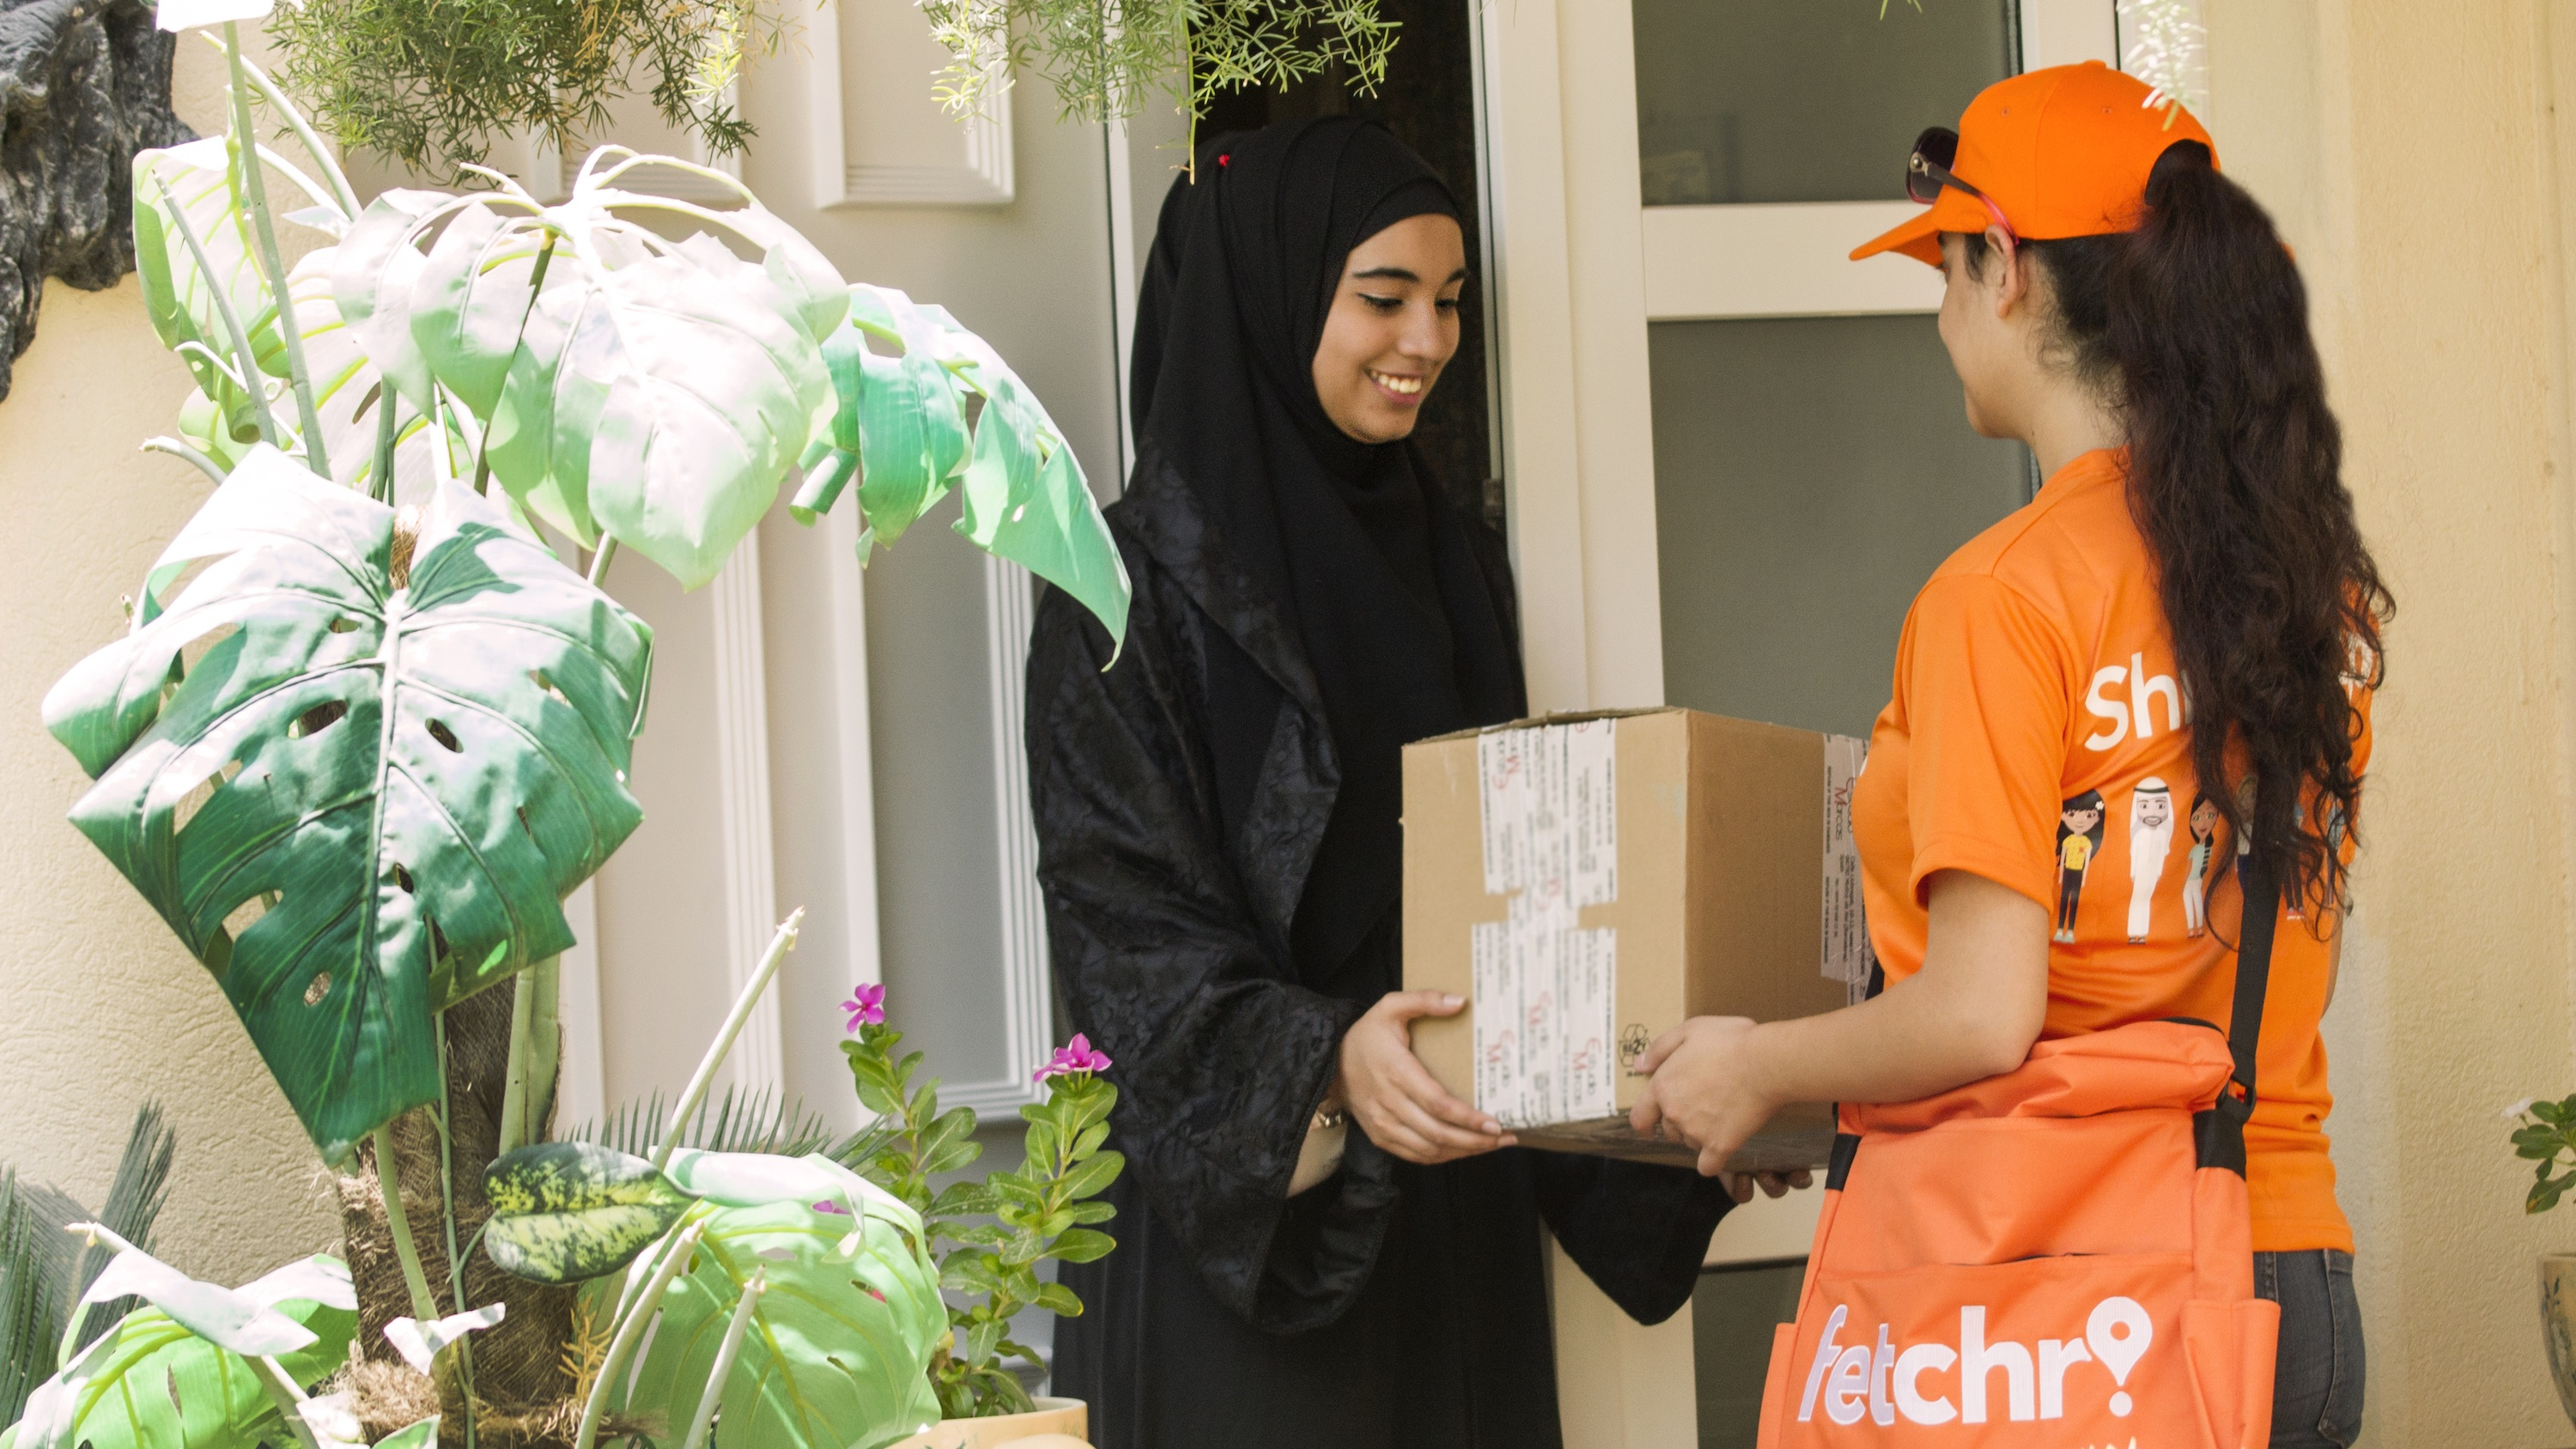 Cash-on-delivery culture, lack of house numbering, and traditional gender norms make package delivery rather difficult throughout the Middle East.